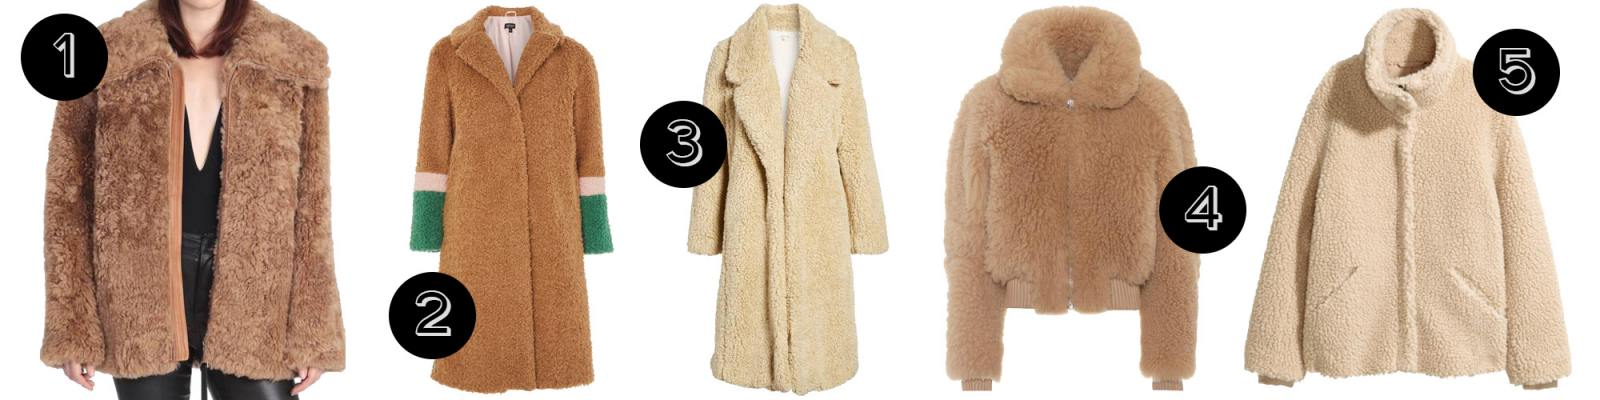 d8a1575e0a27 ... friends or just to work, I picked out some of my favorite teddy bear  coats! I personally love the classic cream and brown options, shop my top 5  below: